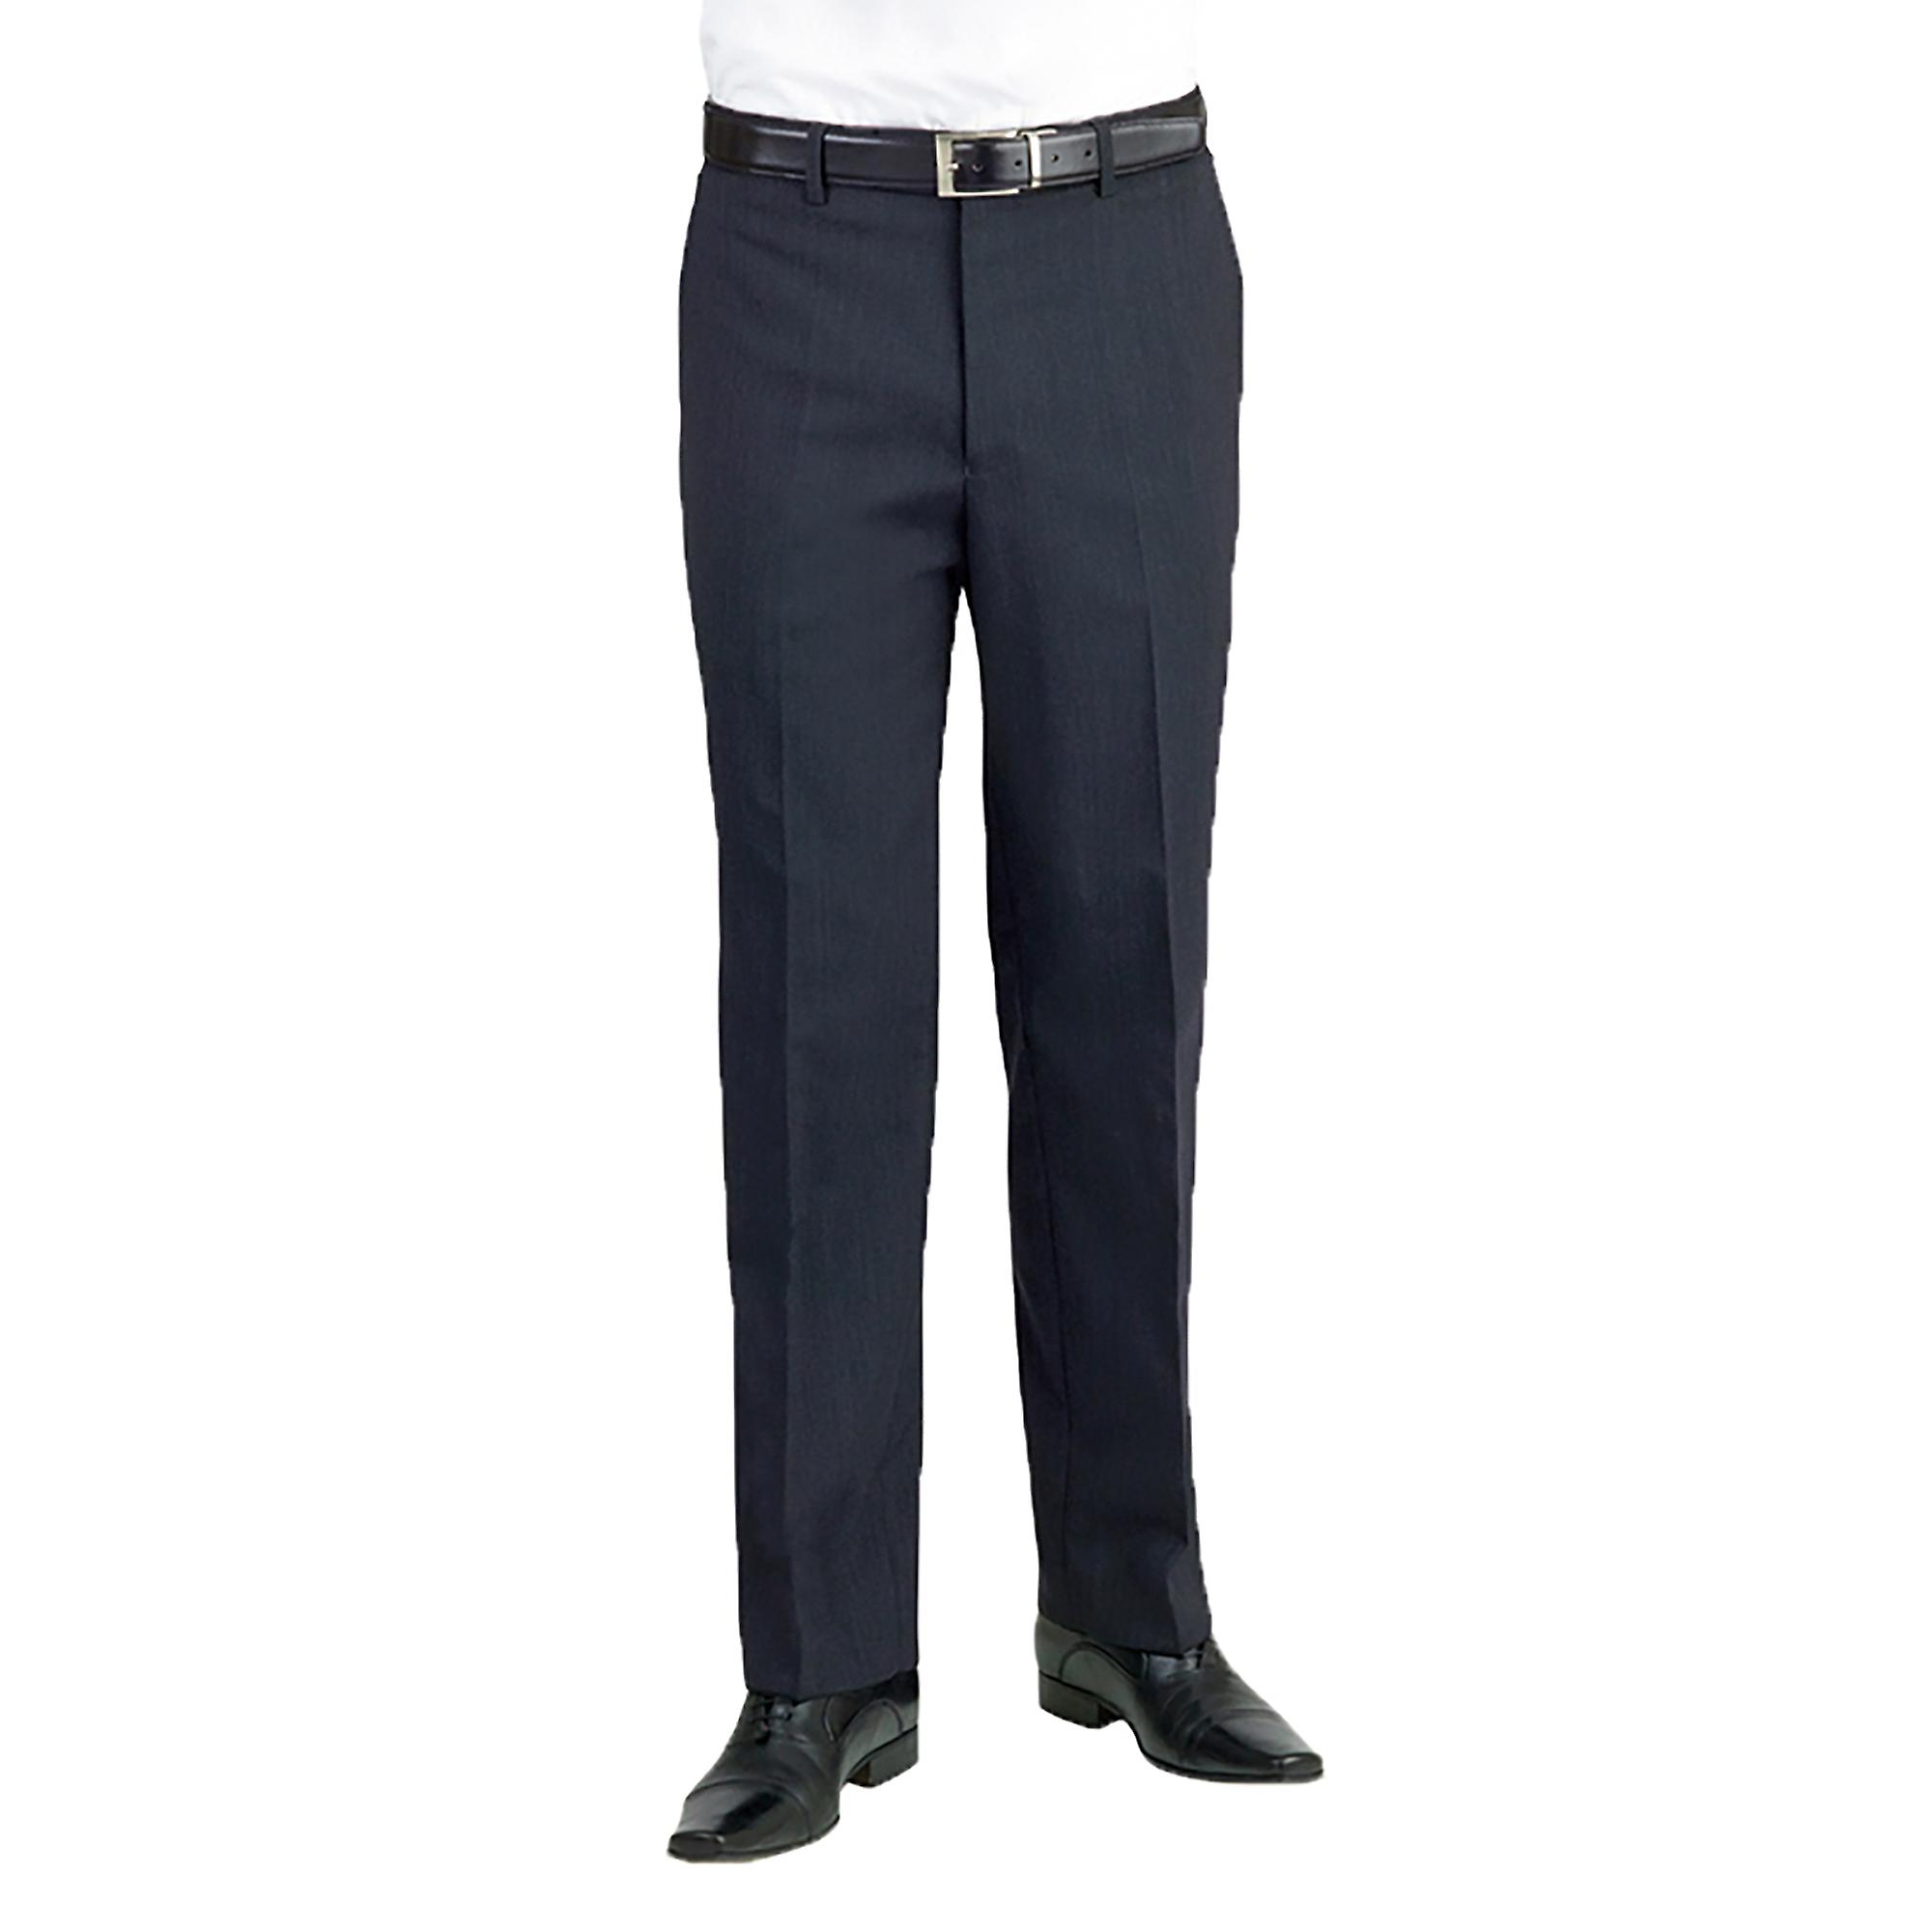 Brook Taverner Apollo Flat Front Formal Suit Trousers